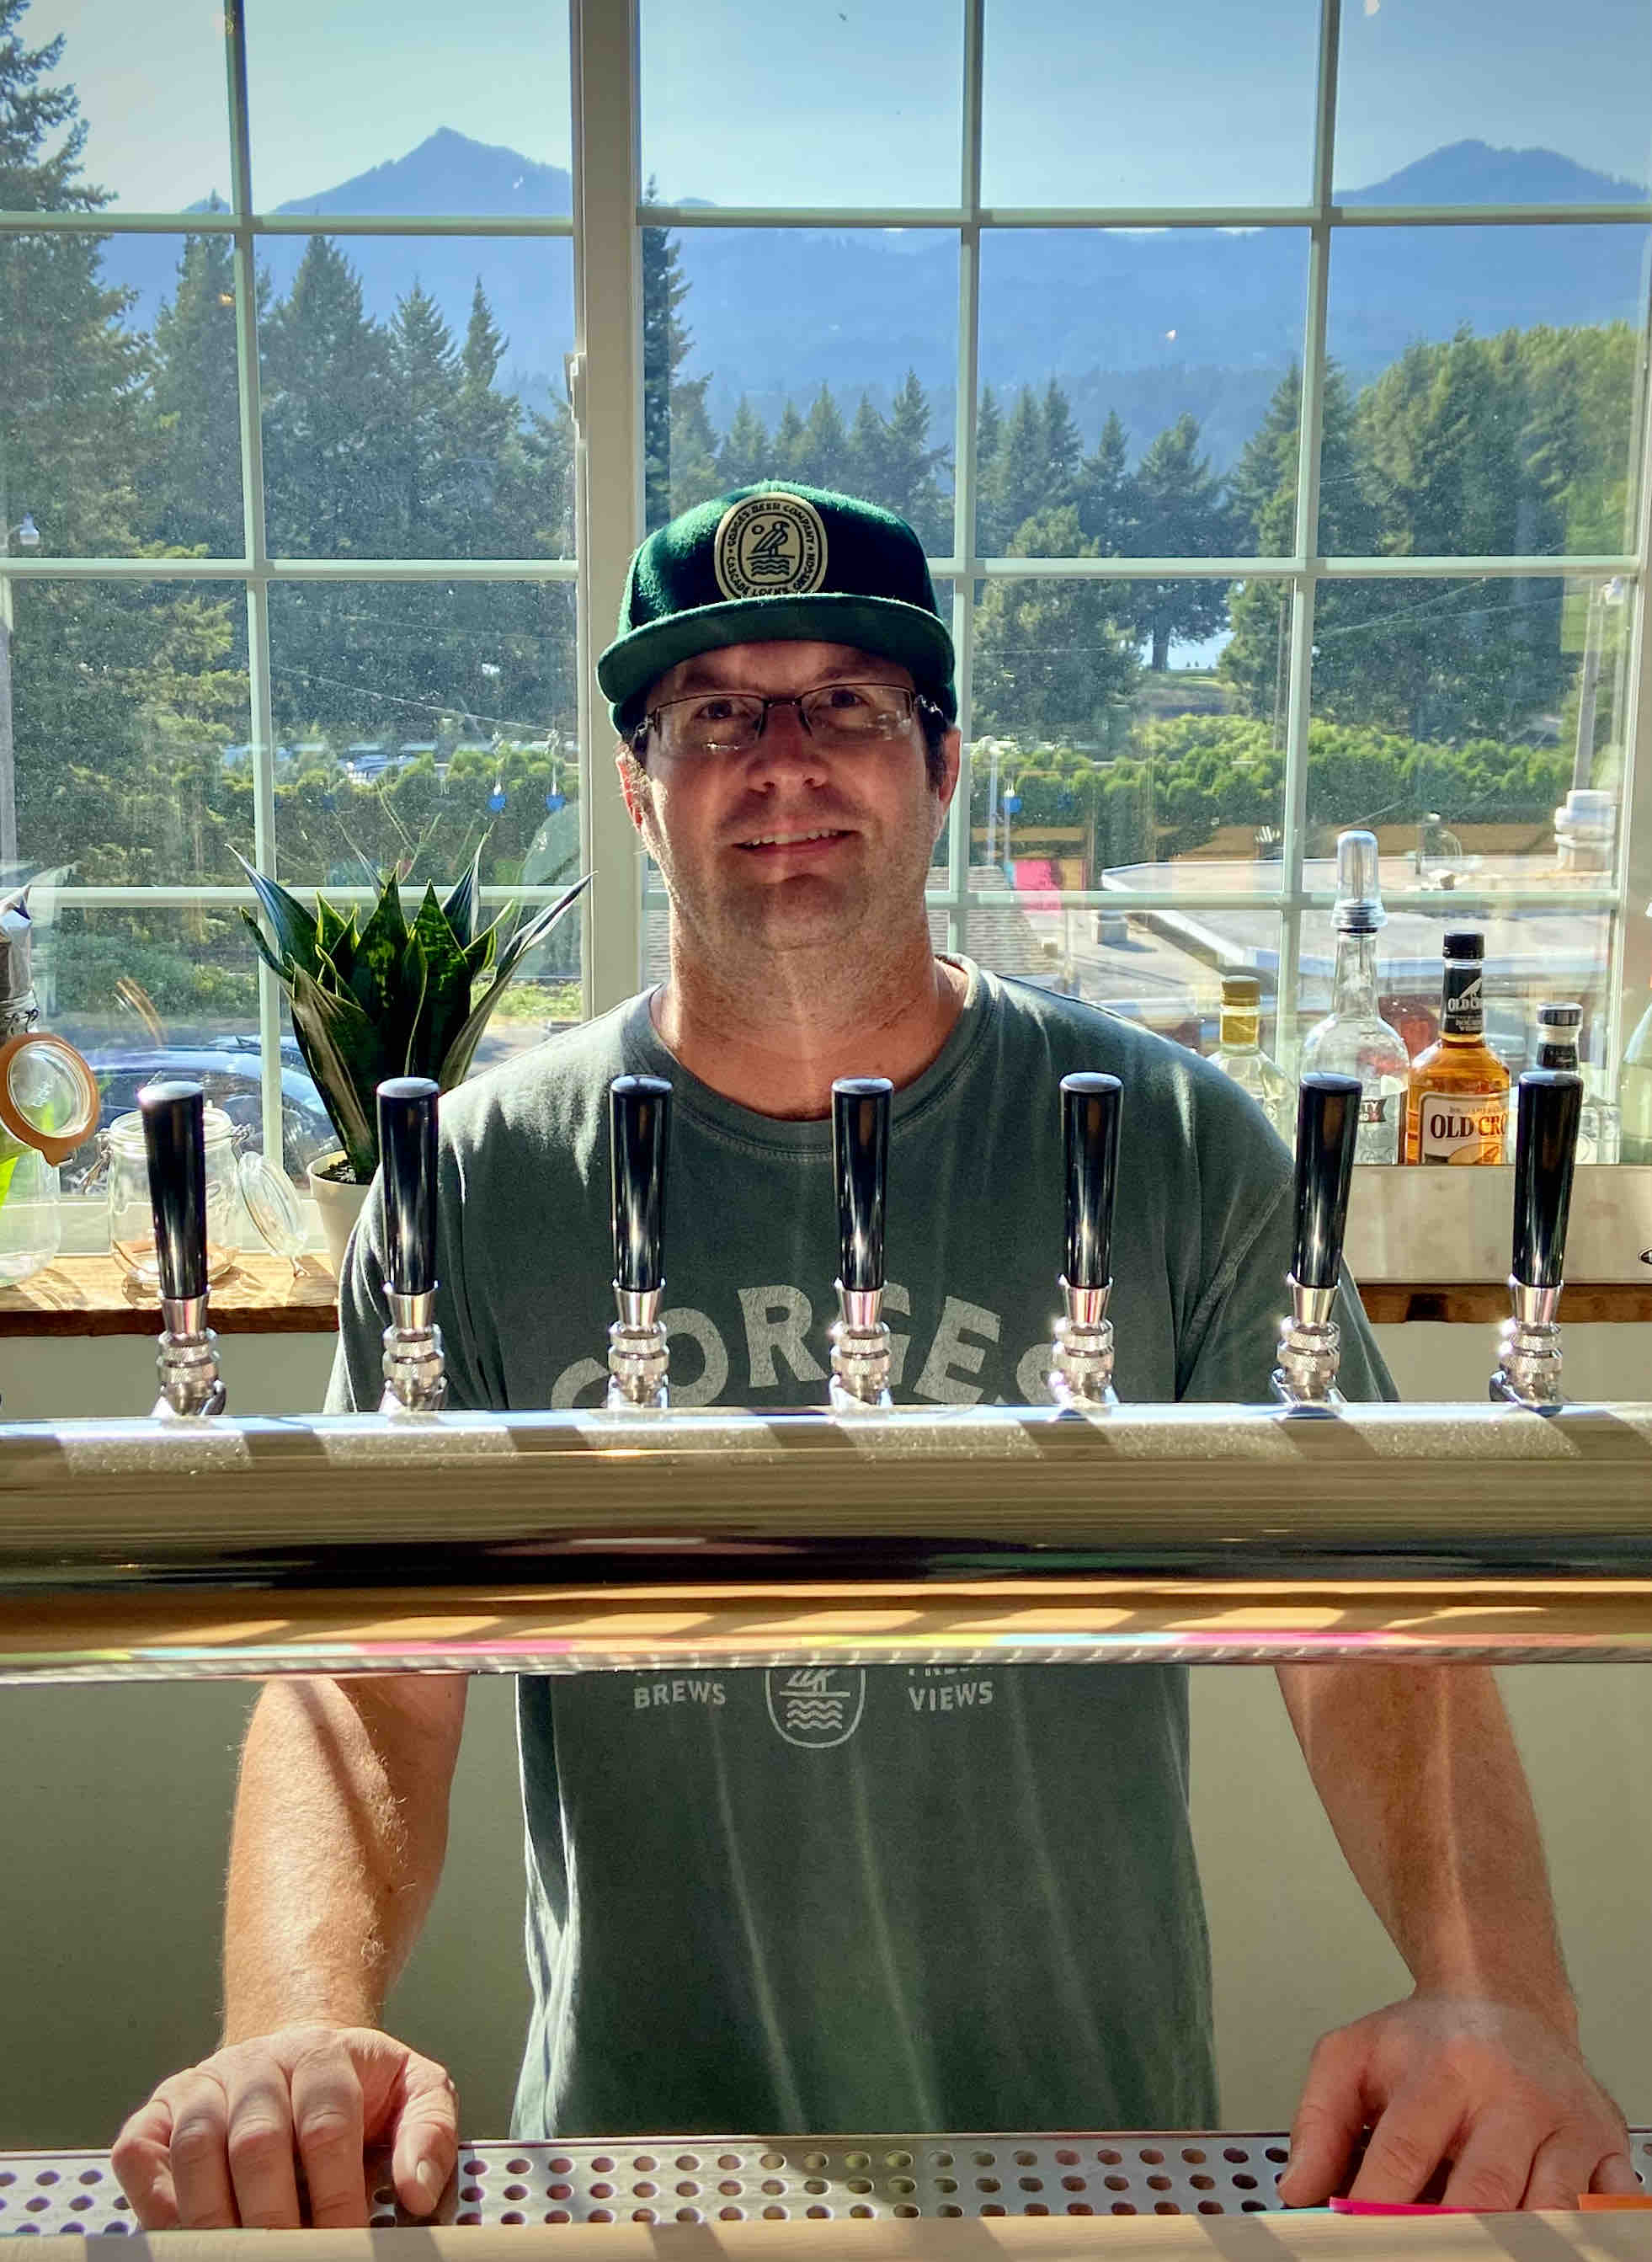 Bryan Keilty ready to serve a beer at Gorges Beer Co. in Cascade Locks, Oregon.